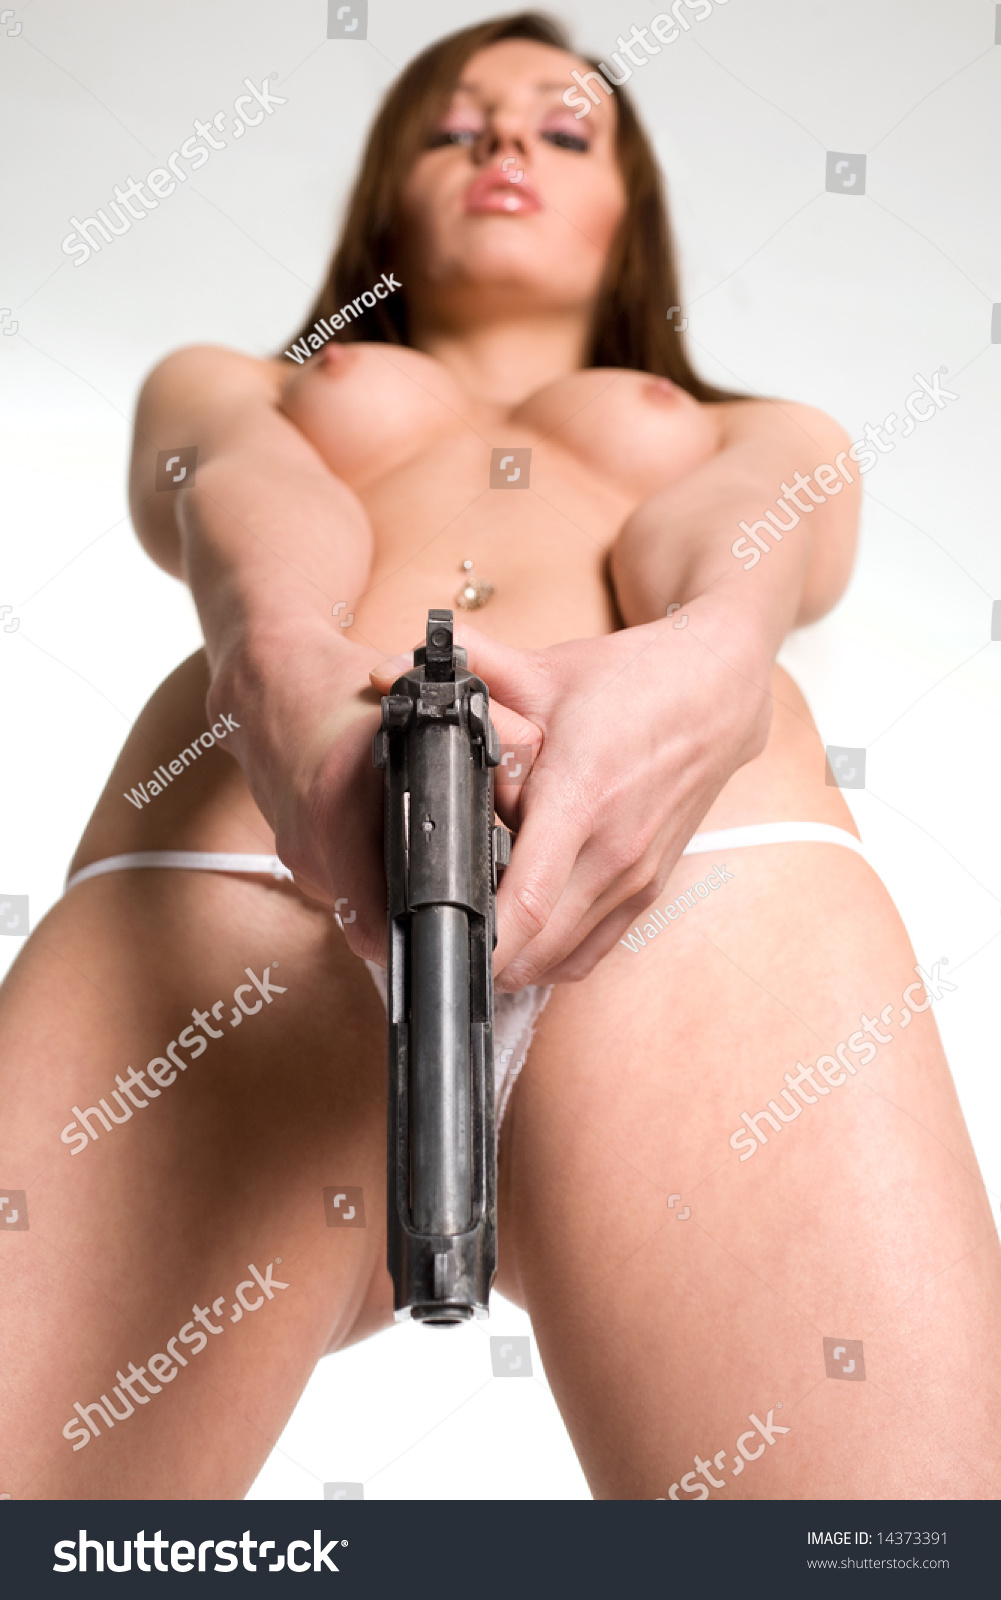 Think, Sons of guns girl nude state